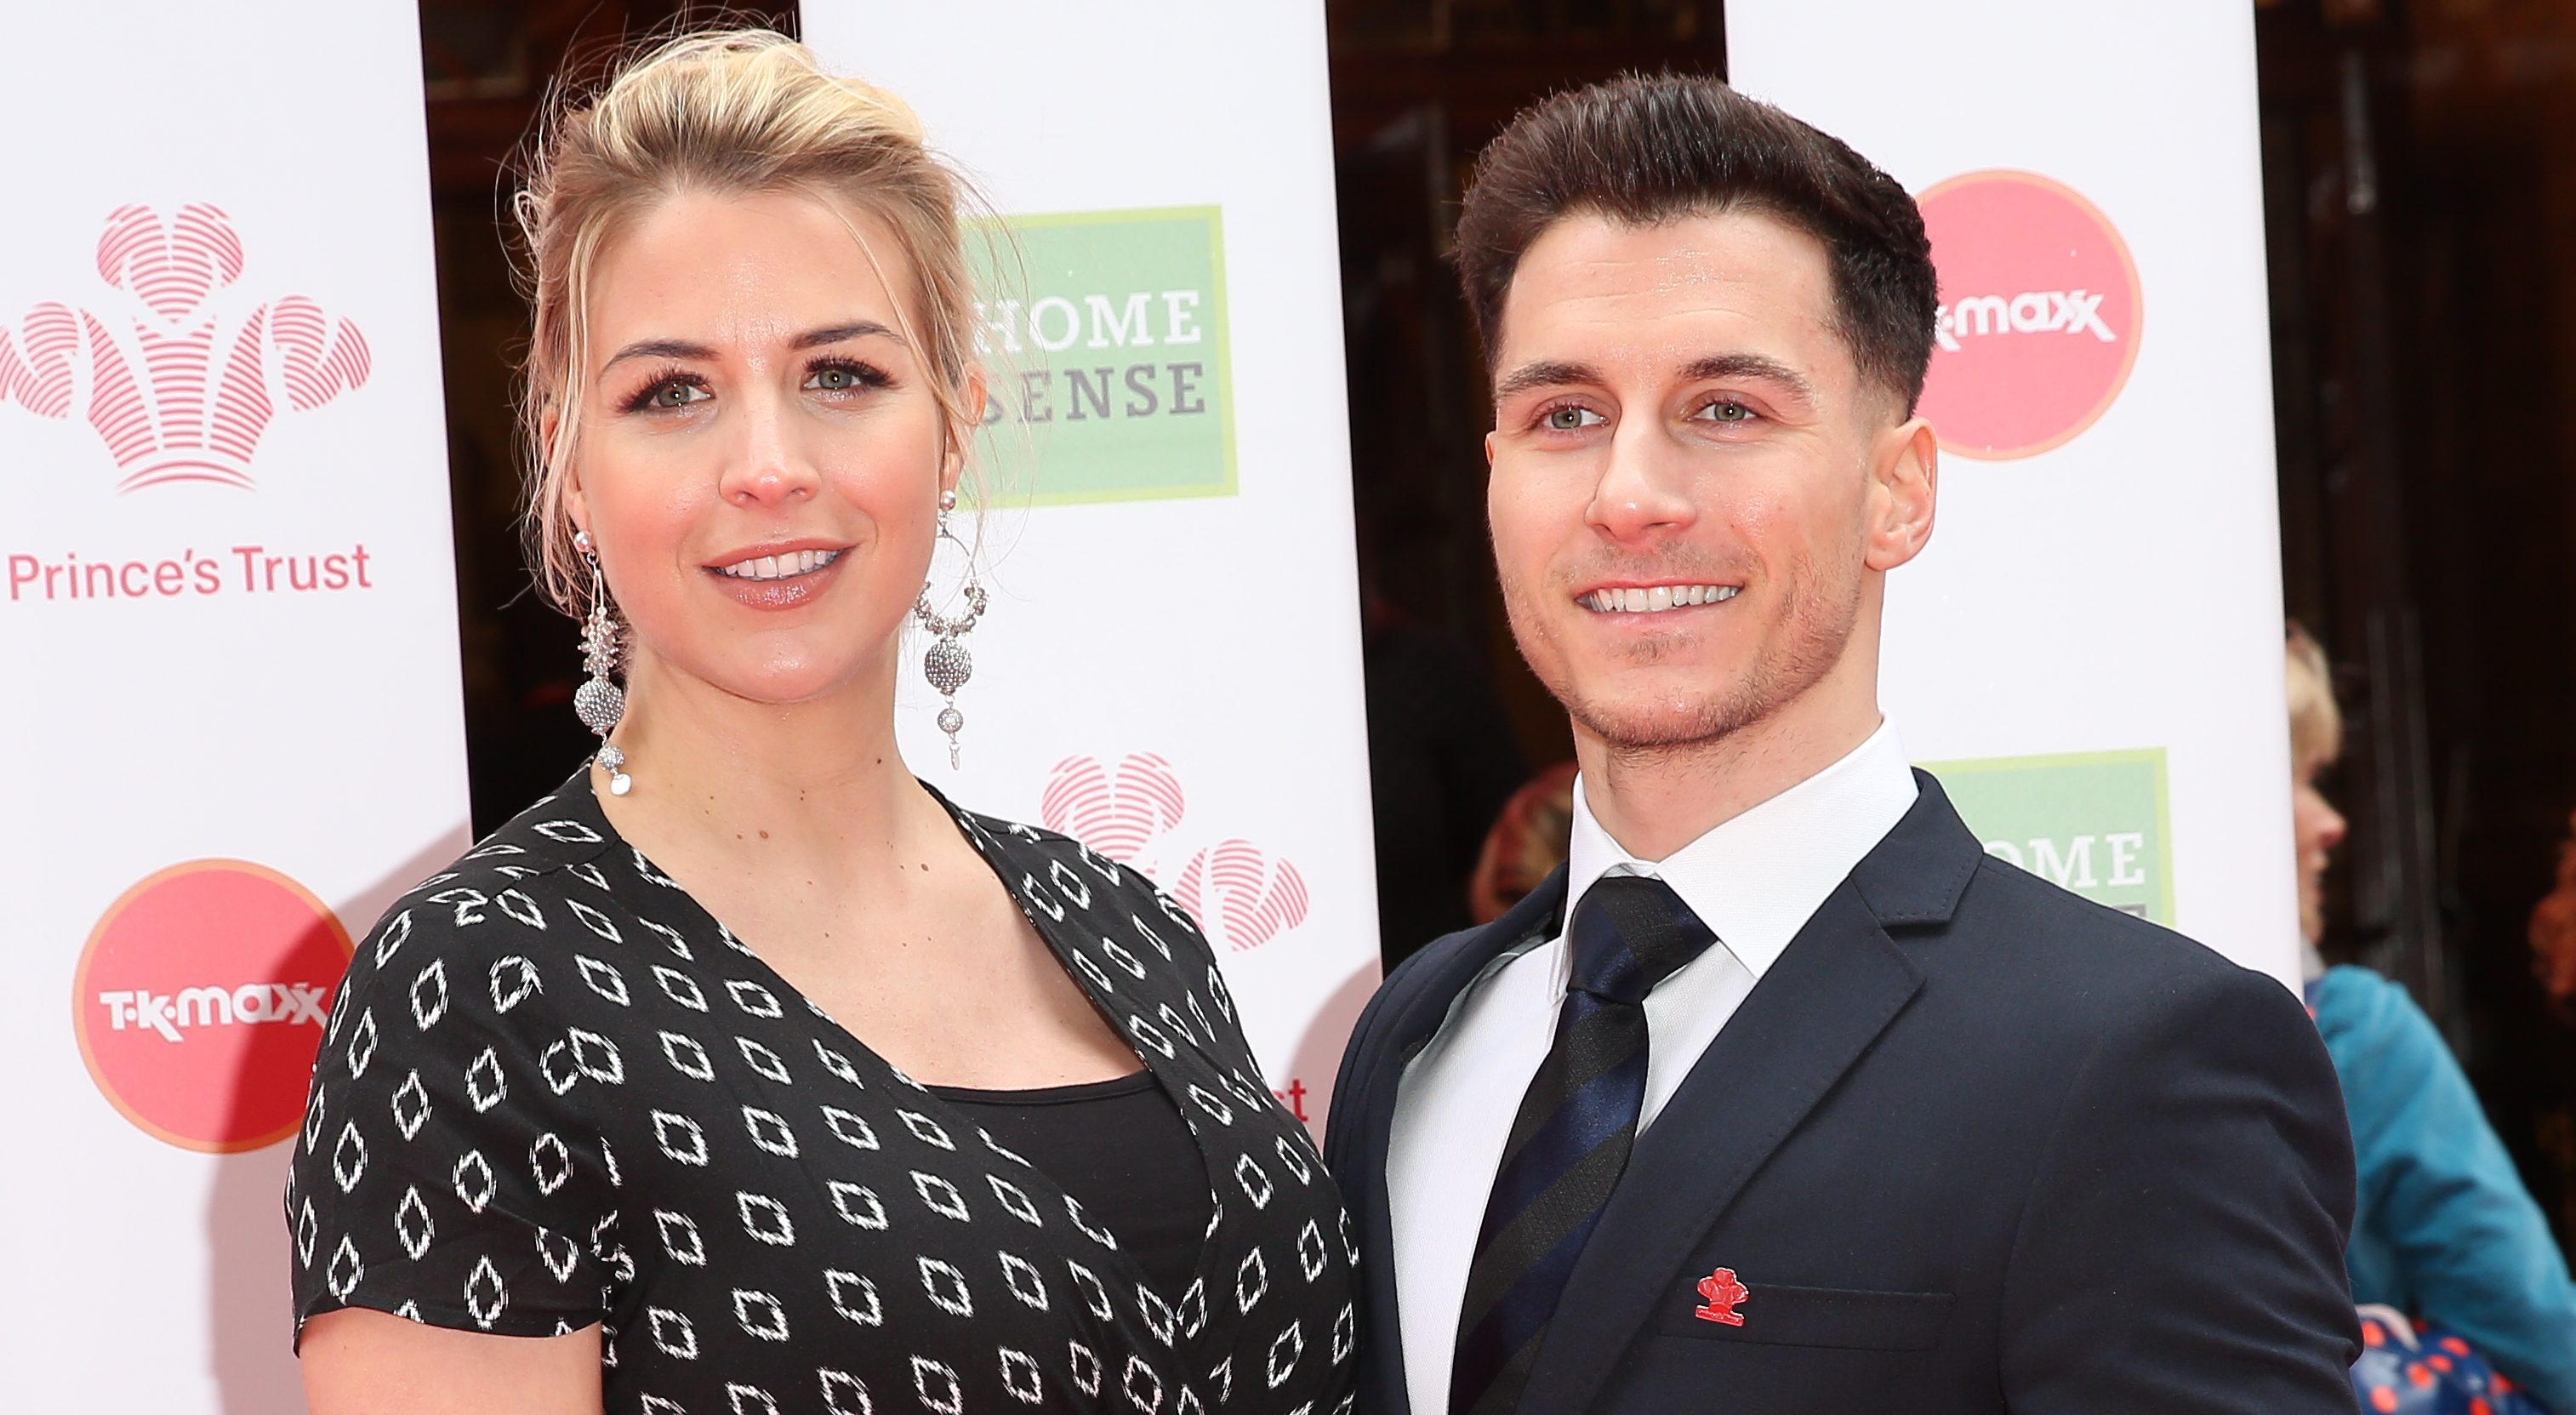 Strictly Come Dancing: Gemma Atkinson breaks her silence on Gorka's 'demotion'